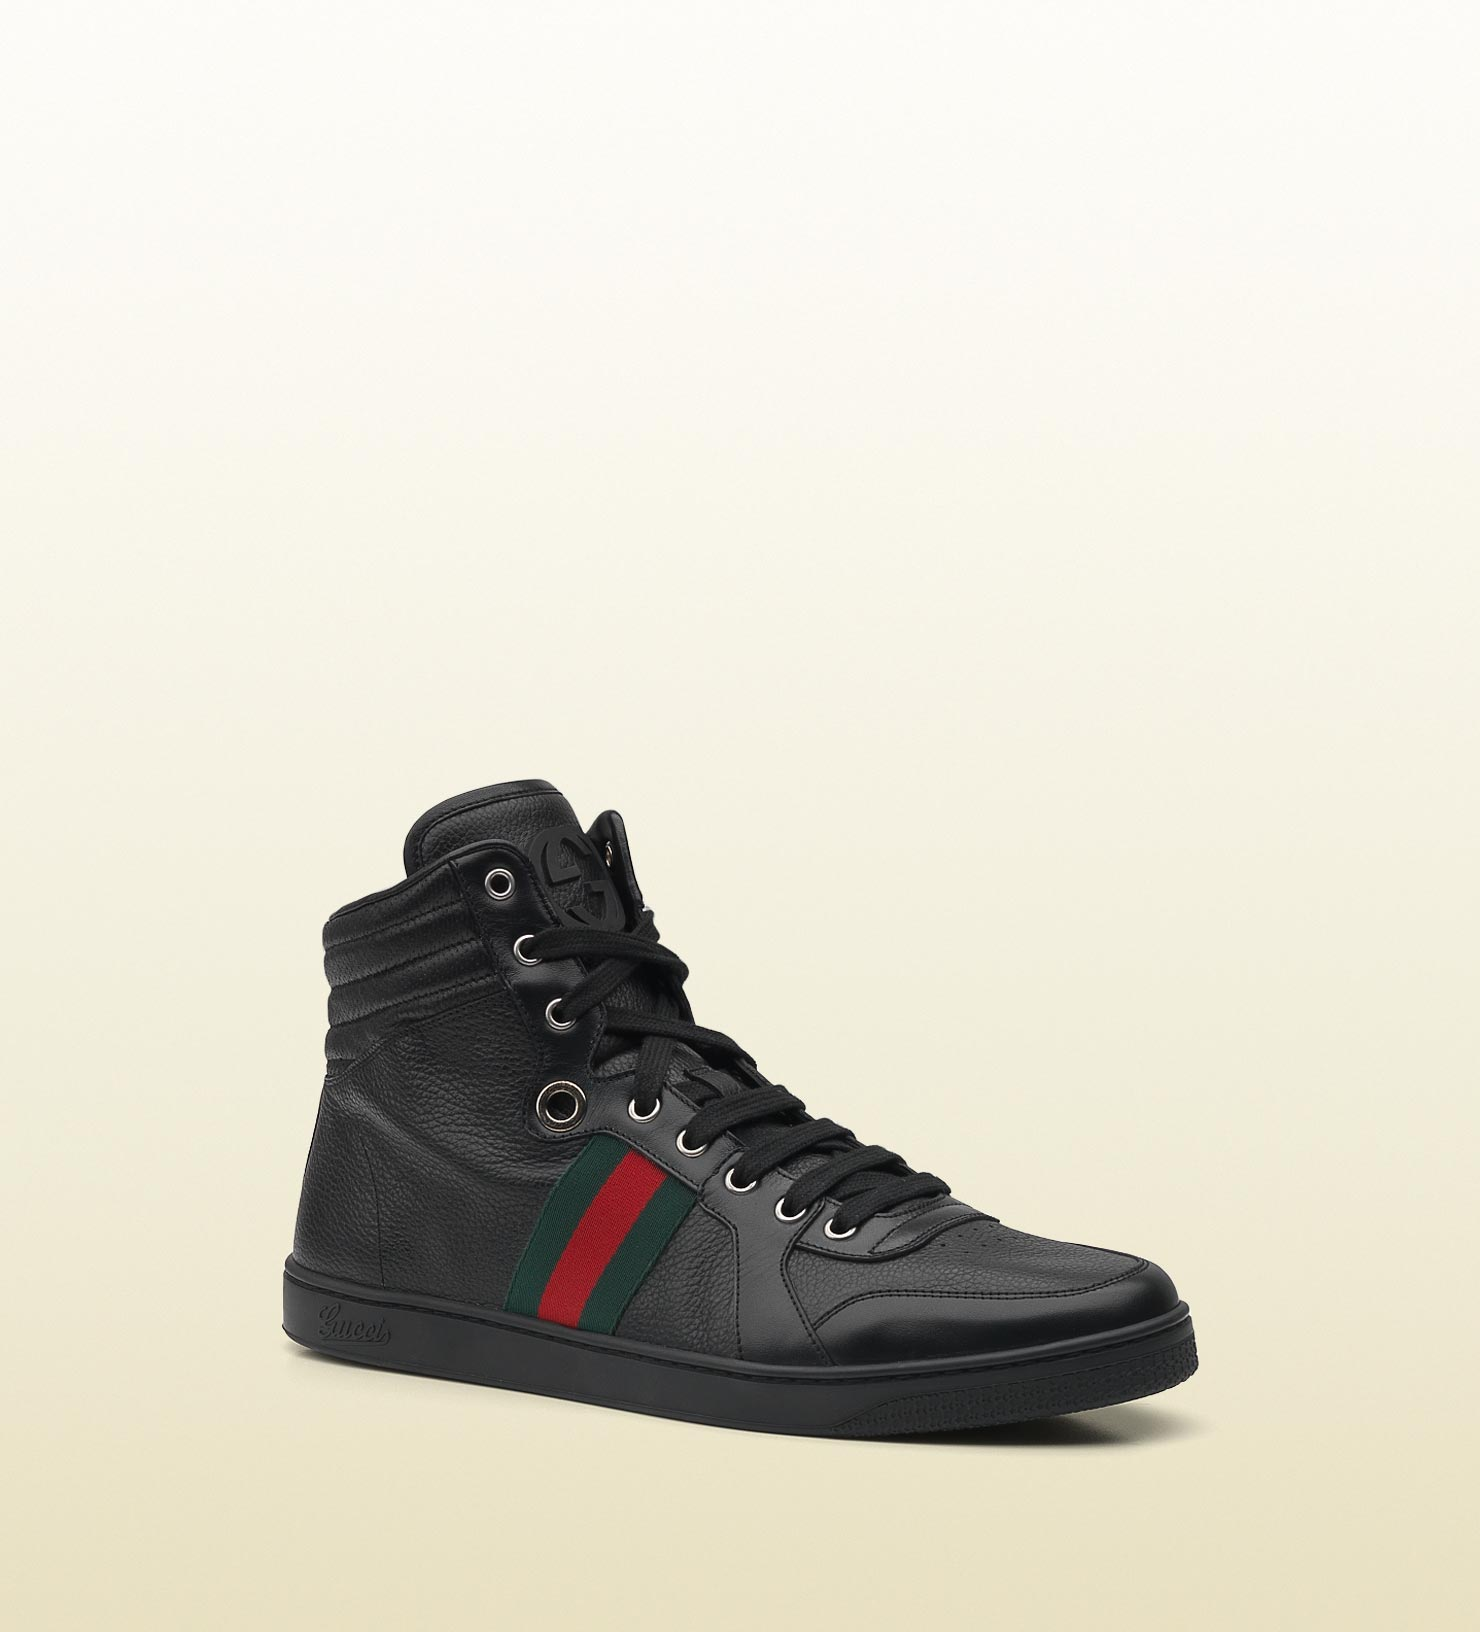 Gucci - hi-top lace-up sneaker with interlocking G and signature web detail. 221825ADFX01060